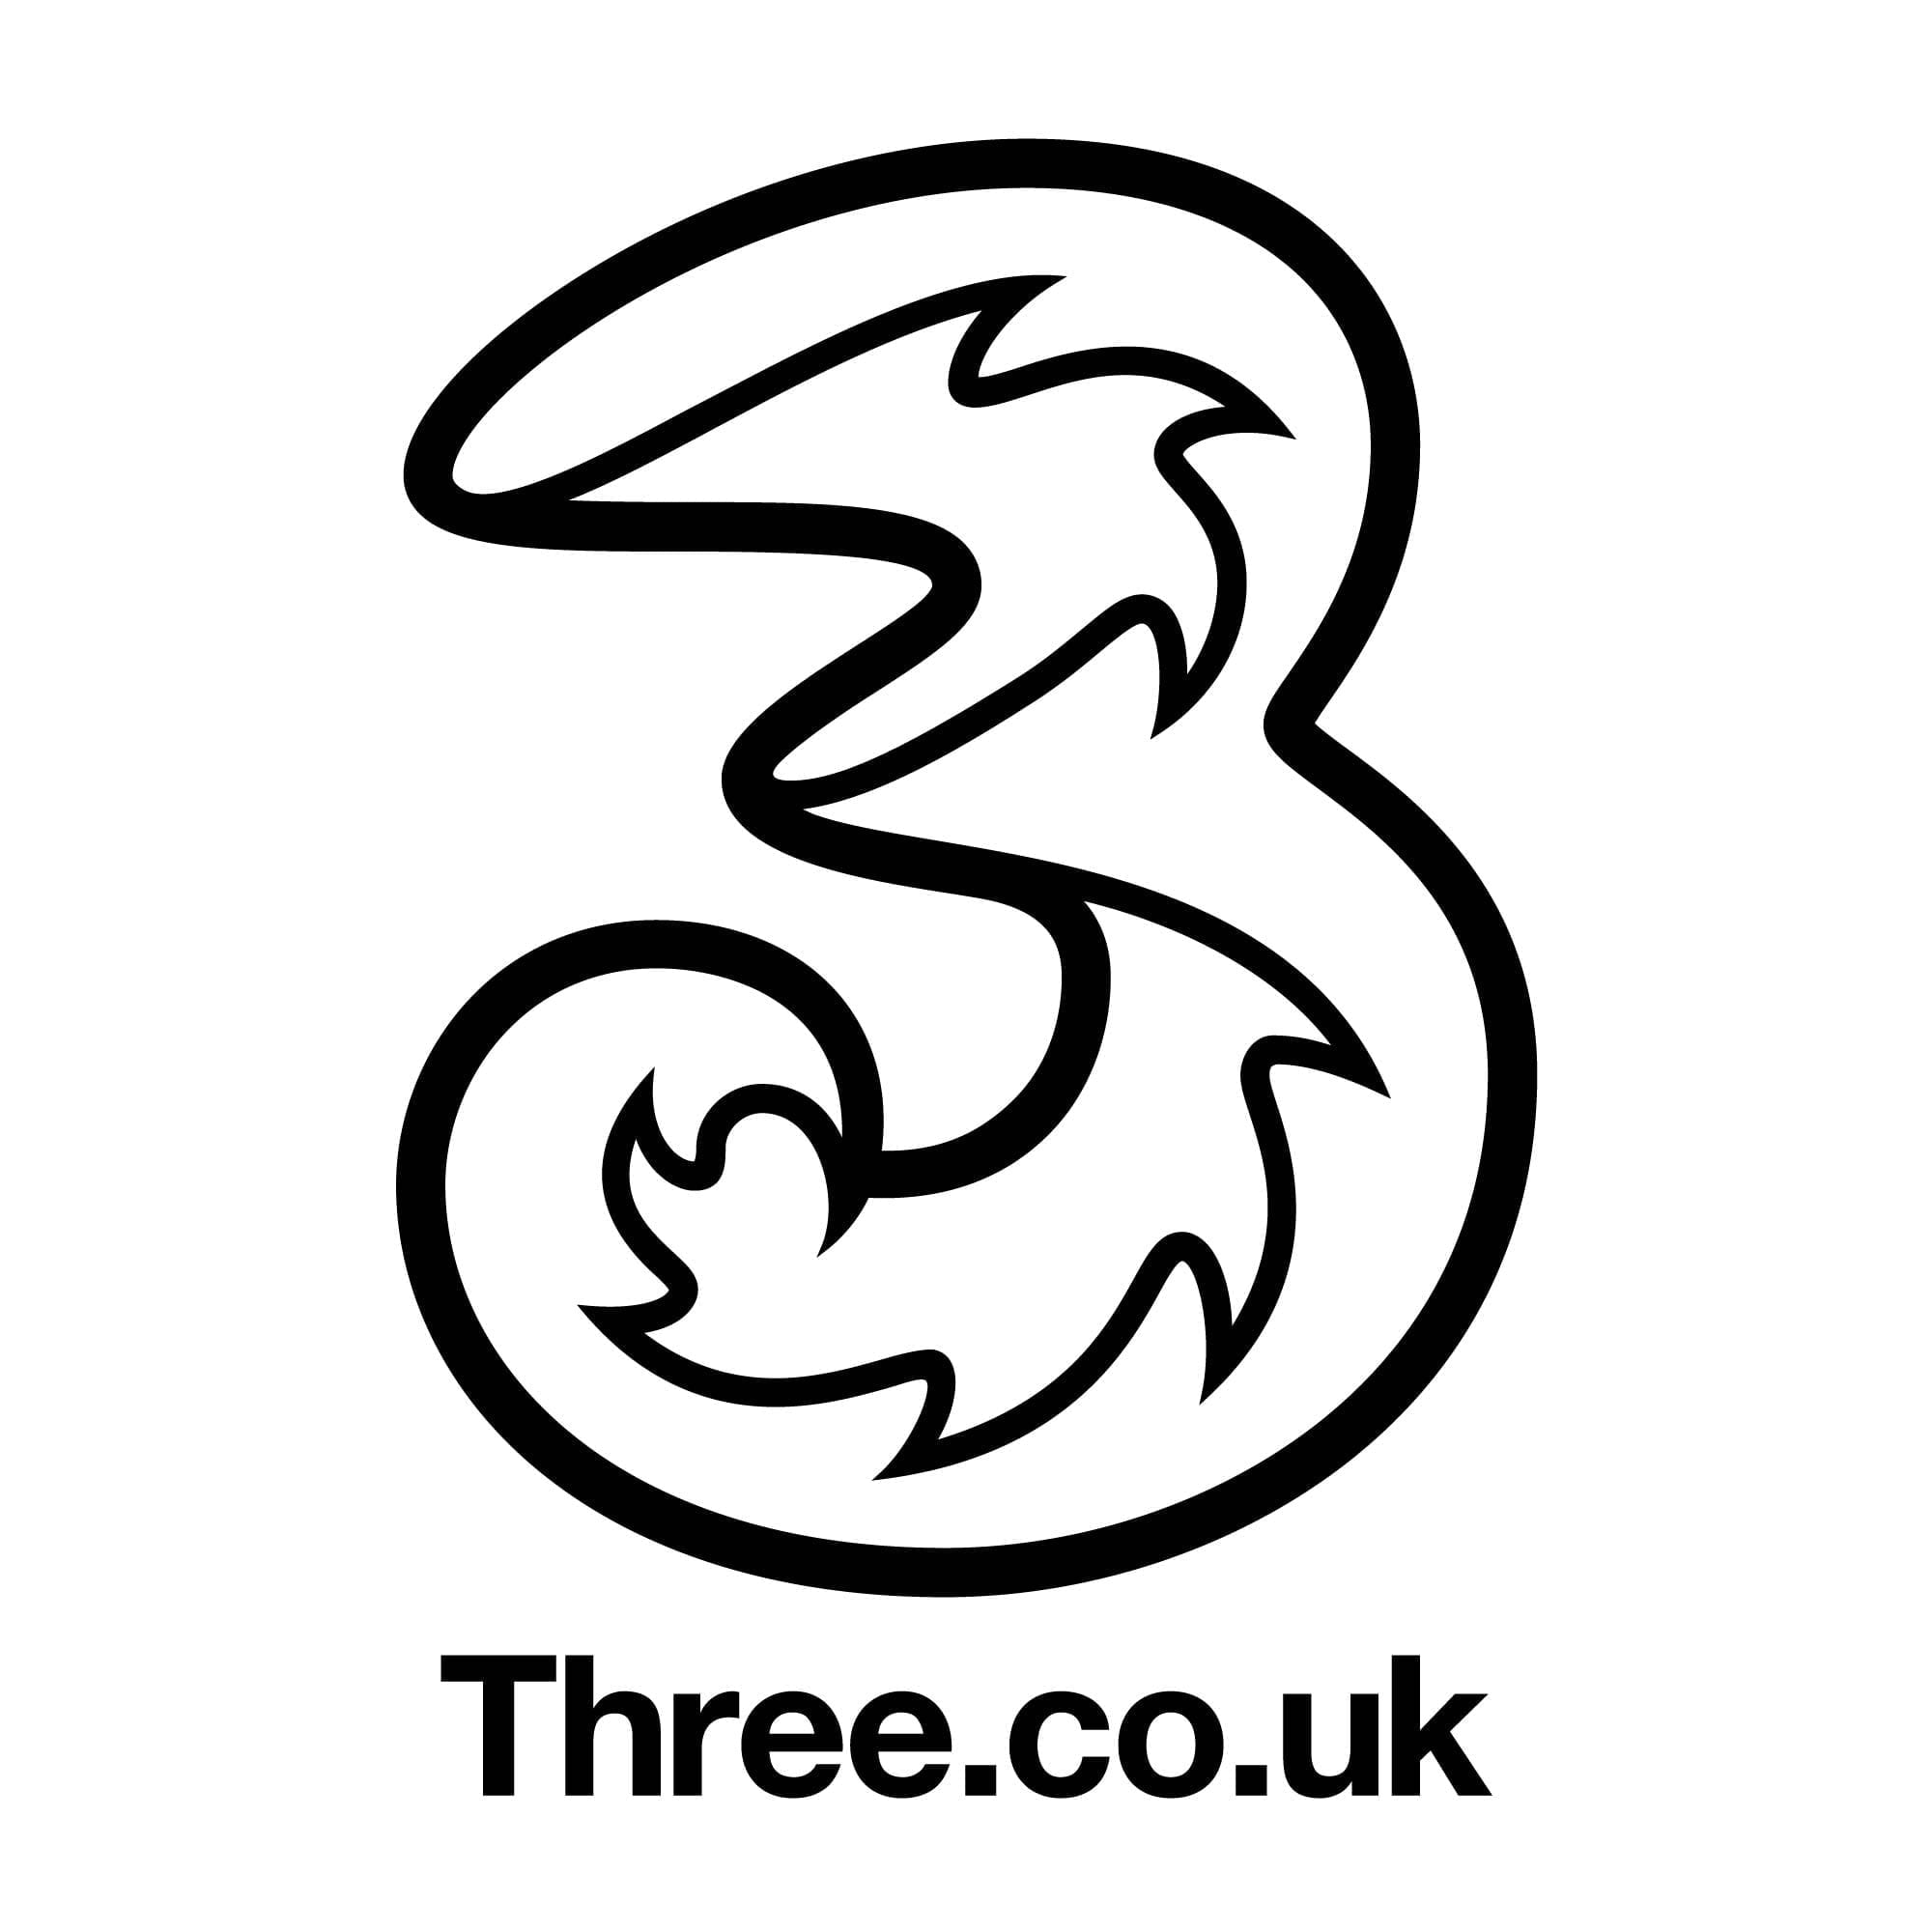 Three network logo